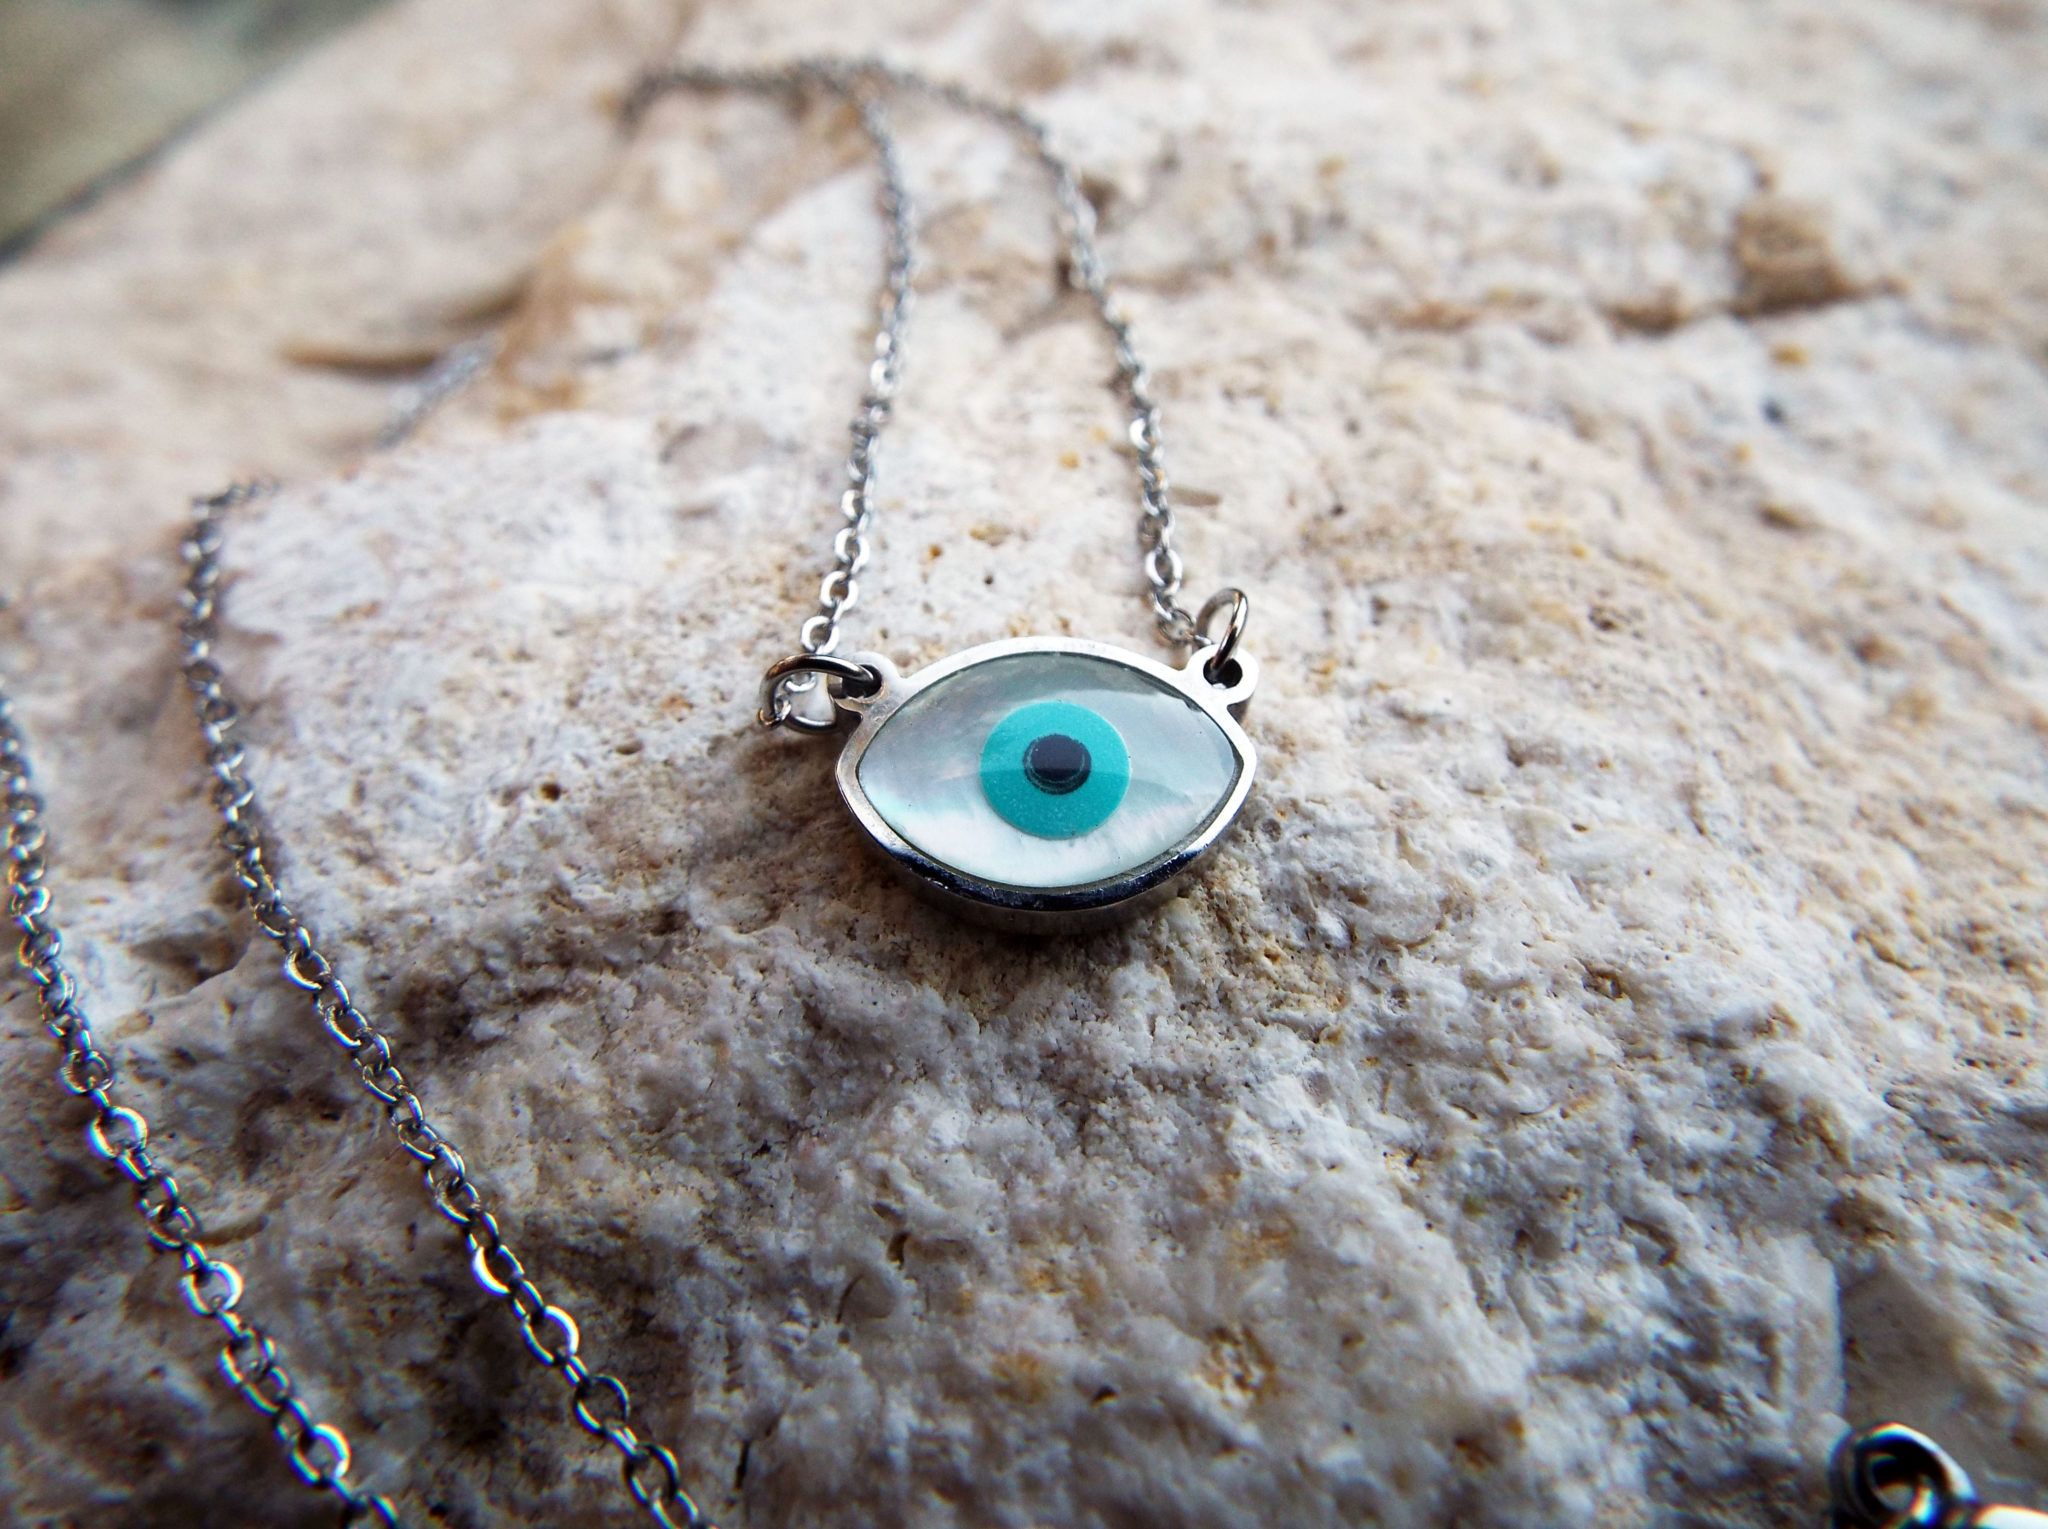 pendant necklace eye detail chakra n sterling silver morgan s buy nz third zoe